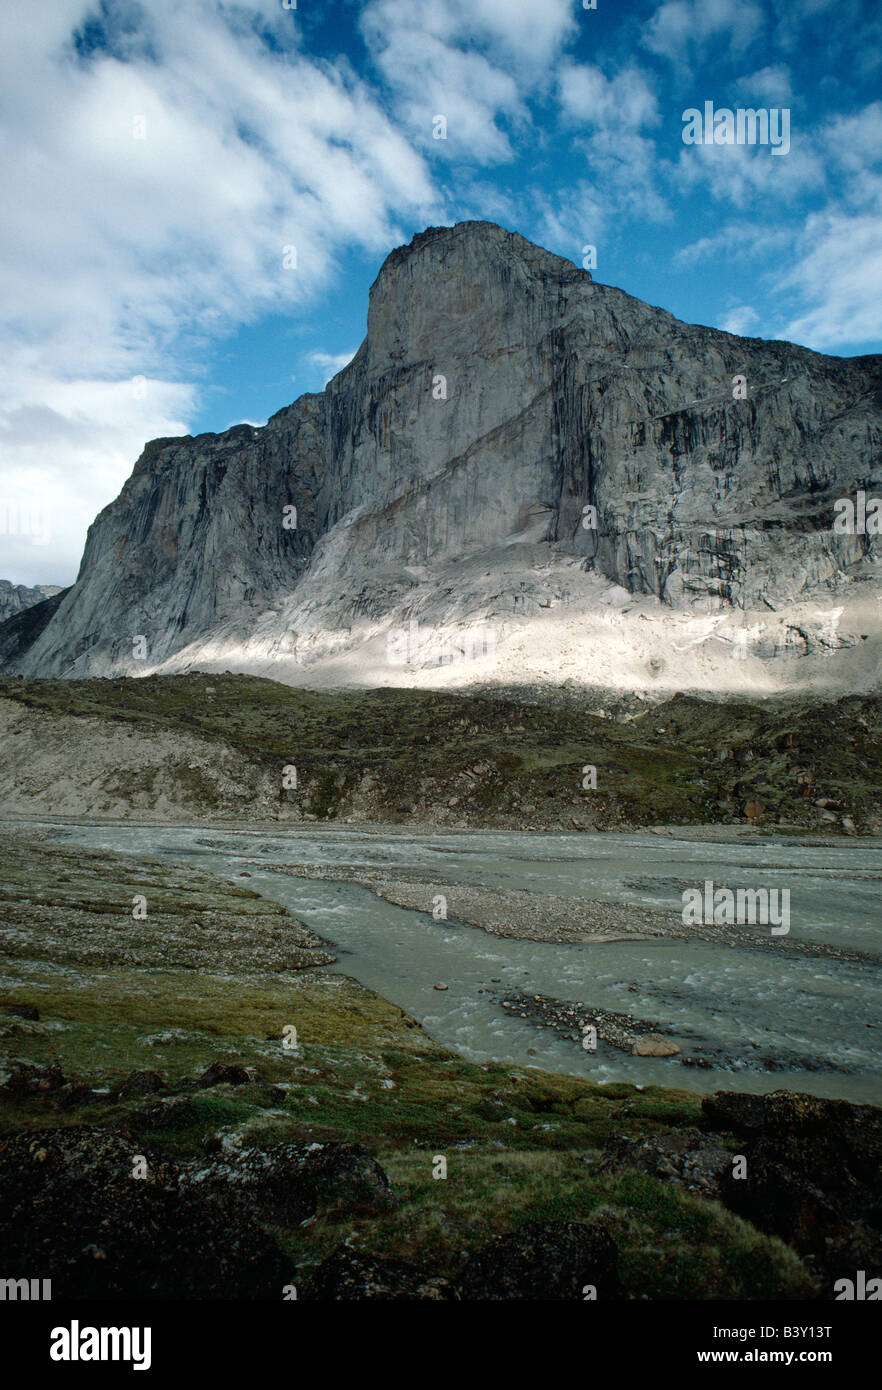 Dappled light on mountains and the Weasel River, Auyuittuq National Park, Baffin Island, Nunavut, Canada - Stock Image